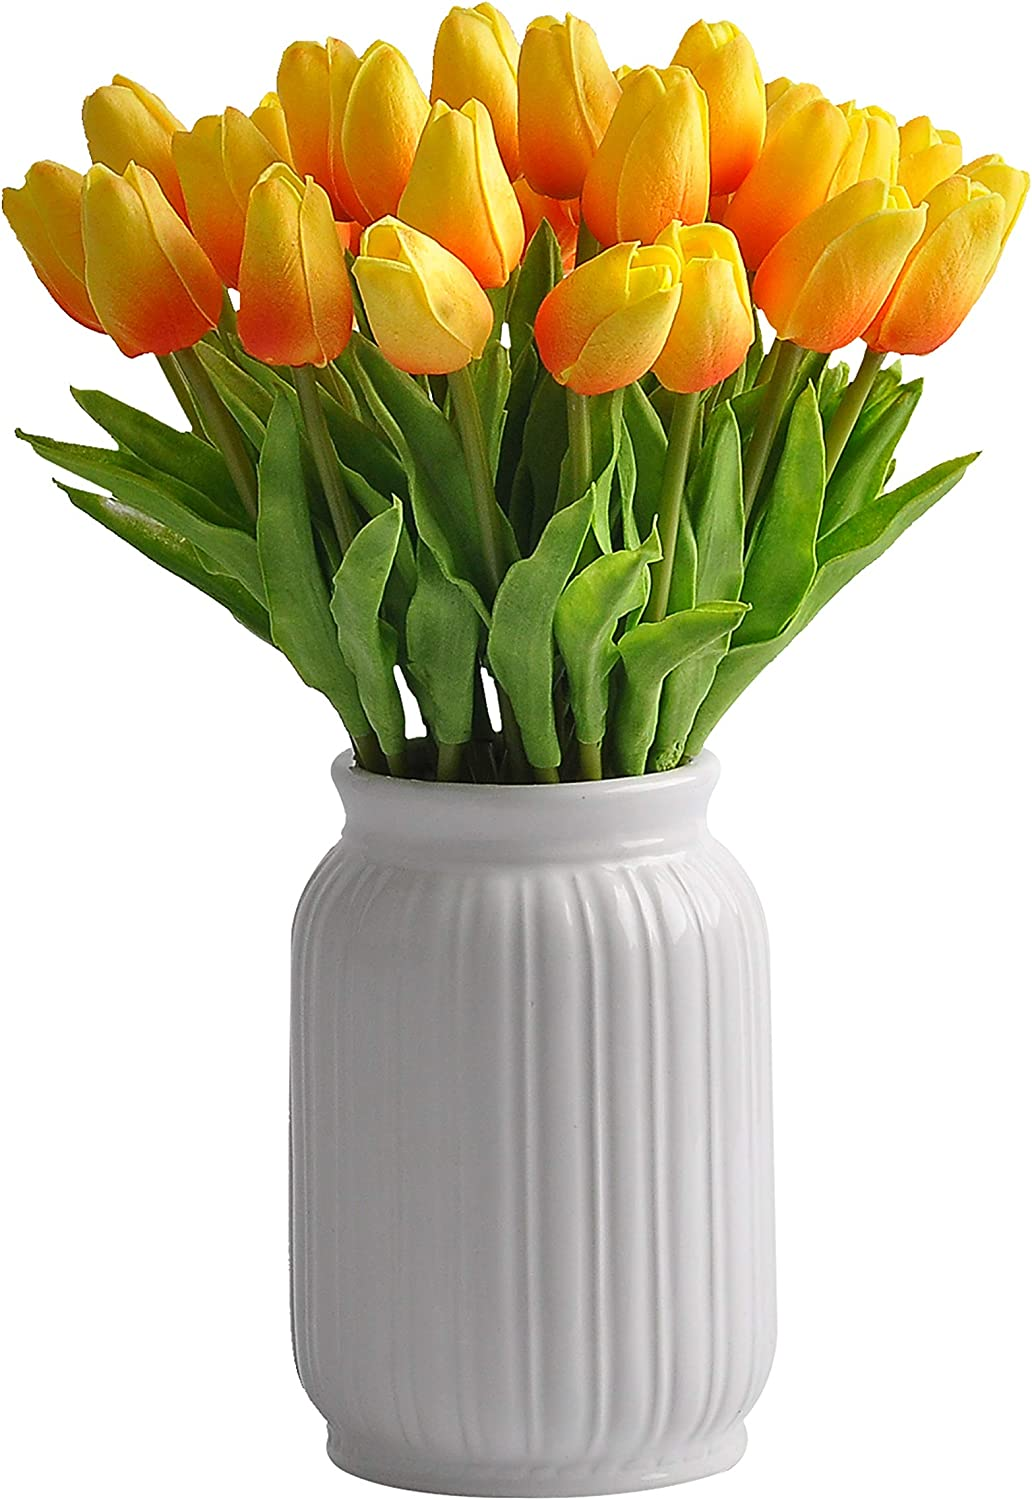 cn-Knight 30pcs Artificial Tulip Max 68% OFF Real Albuquerque Mall Flower for Wedding Touch H